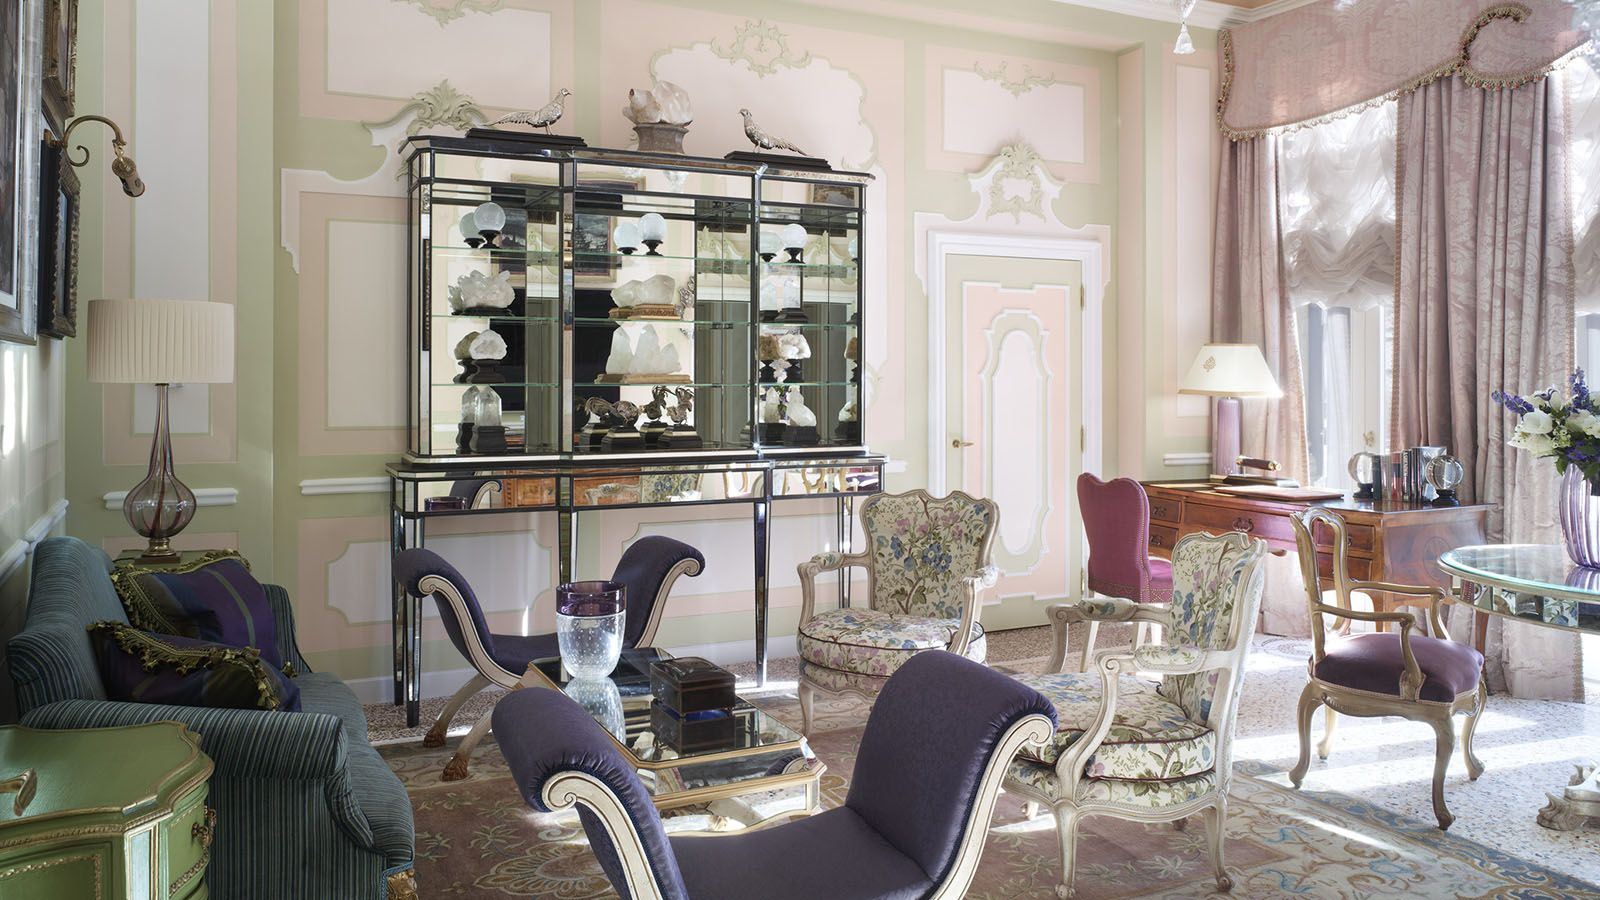 Somerset Maugham Royal Suite, The Gritti Palace